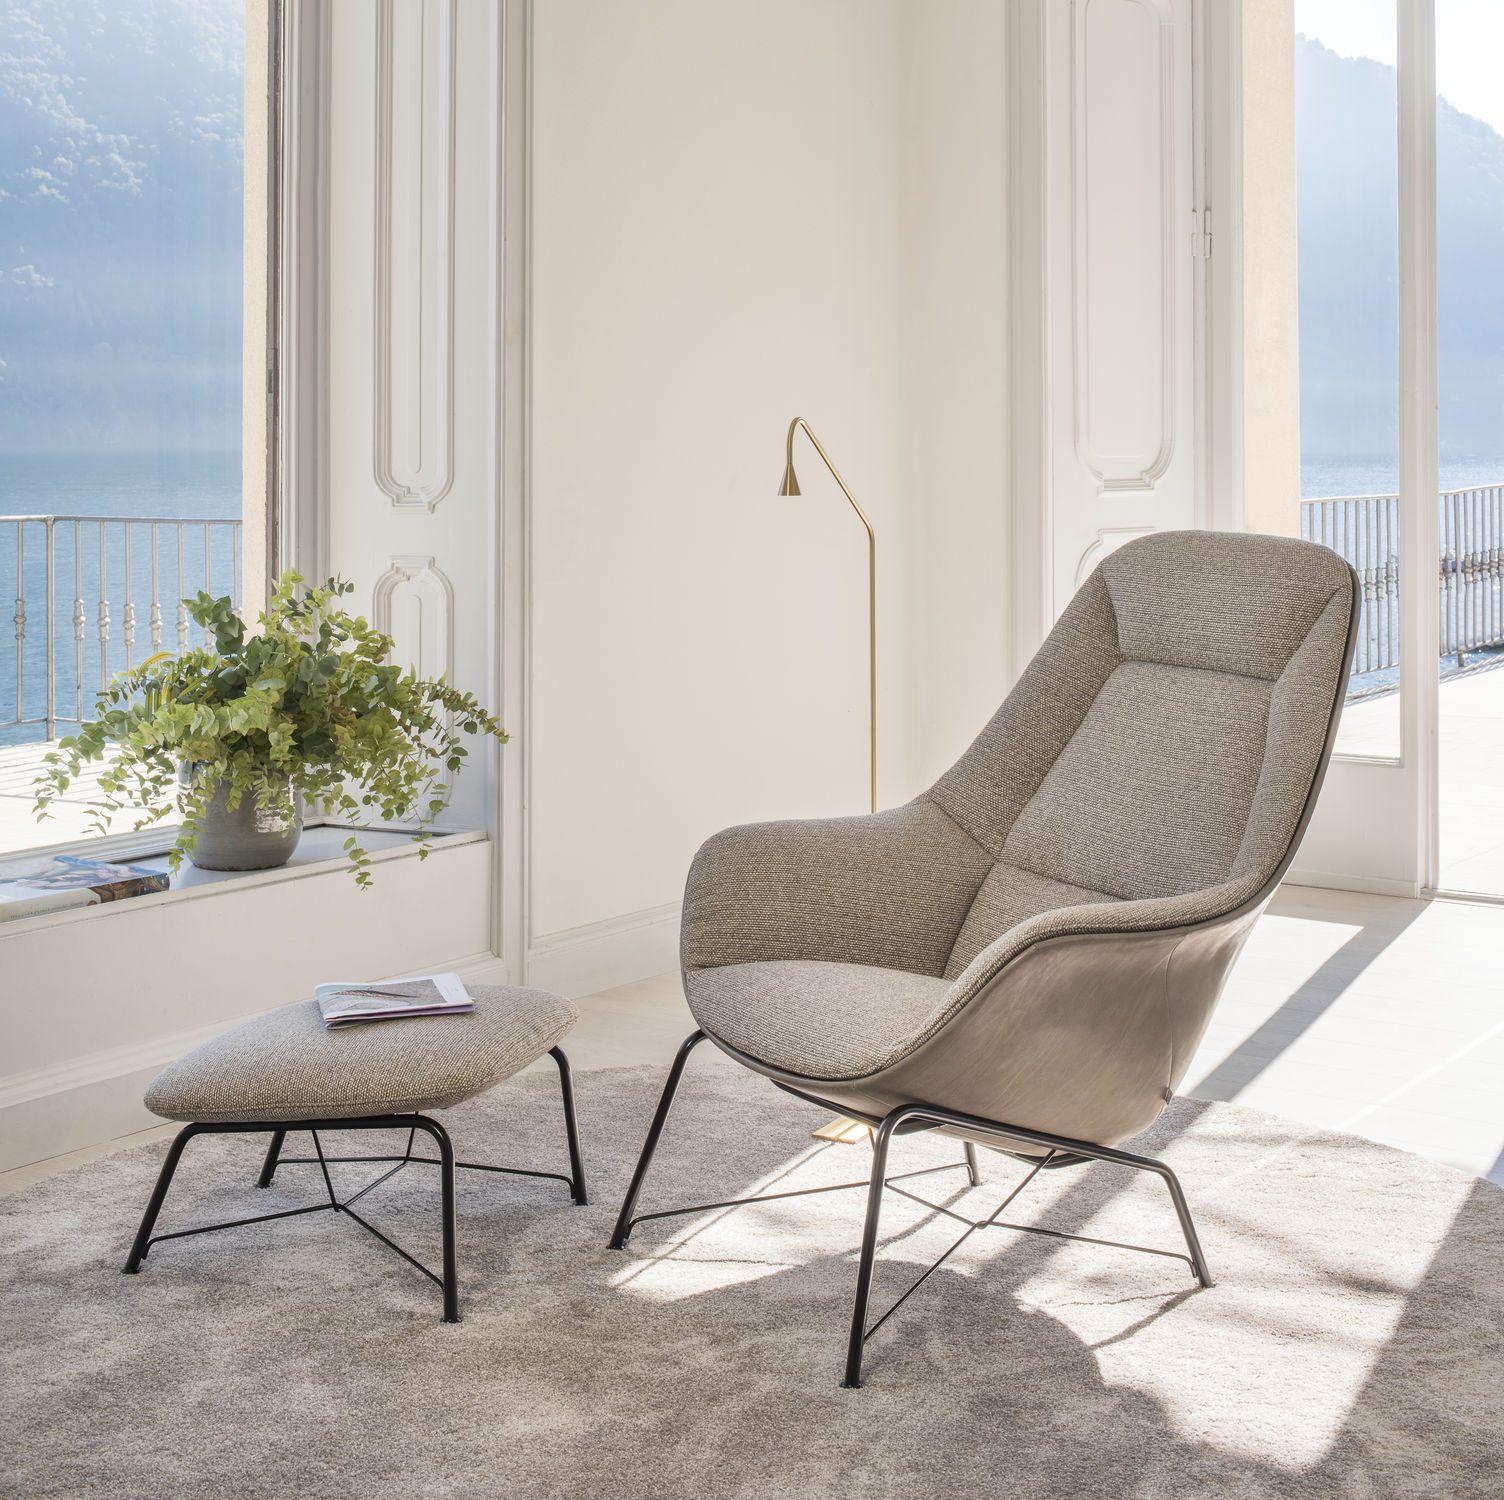 Design Fauteuil Jori.Contemporary Armchair Fabric With Footrest Prelude Lounge By